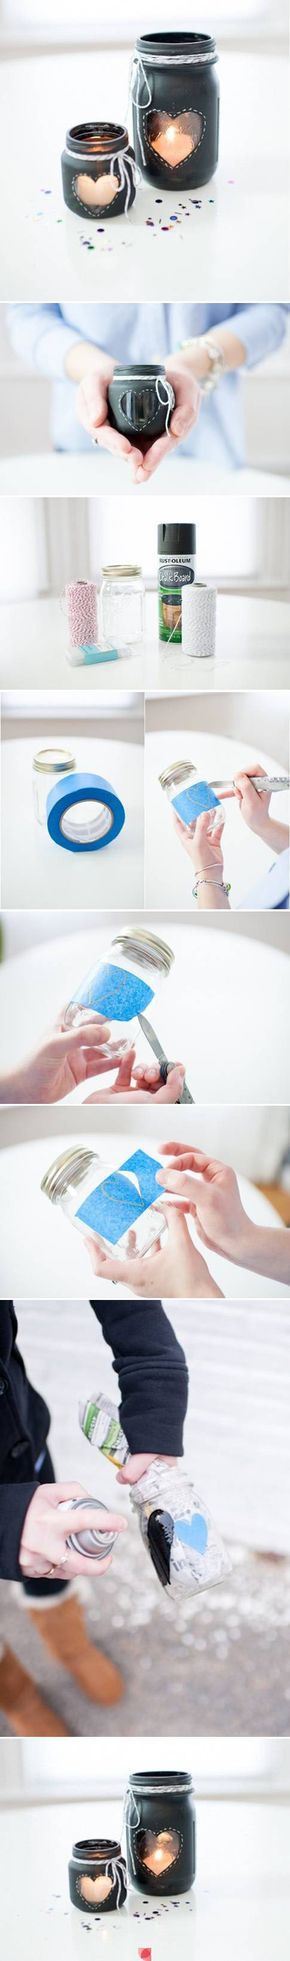 DIY Glass Jar Candlestick                                                                                                                                                     More